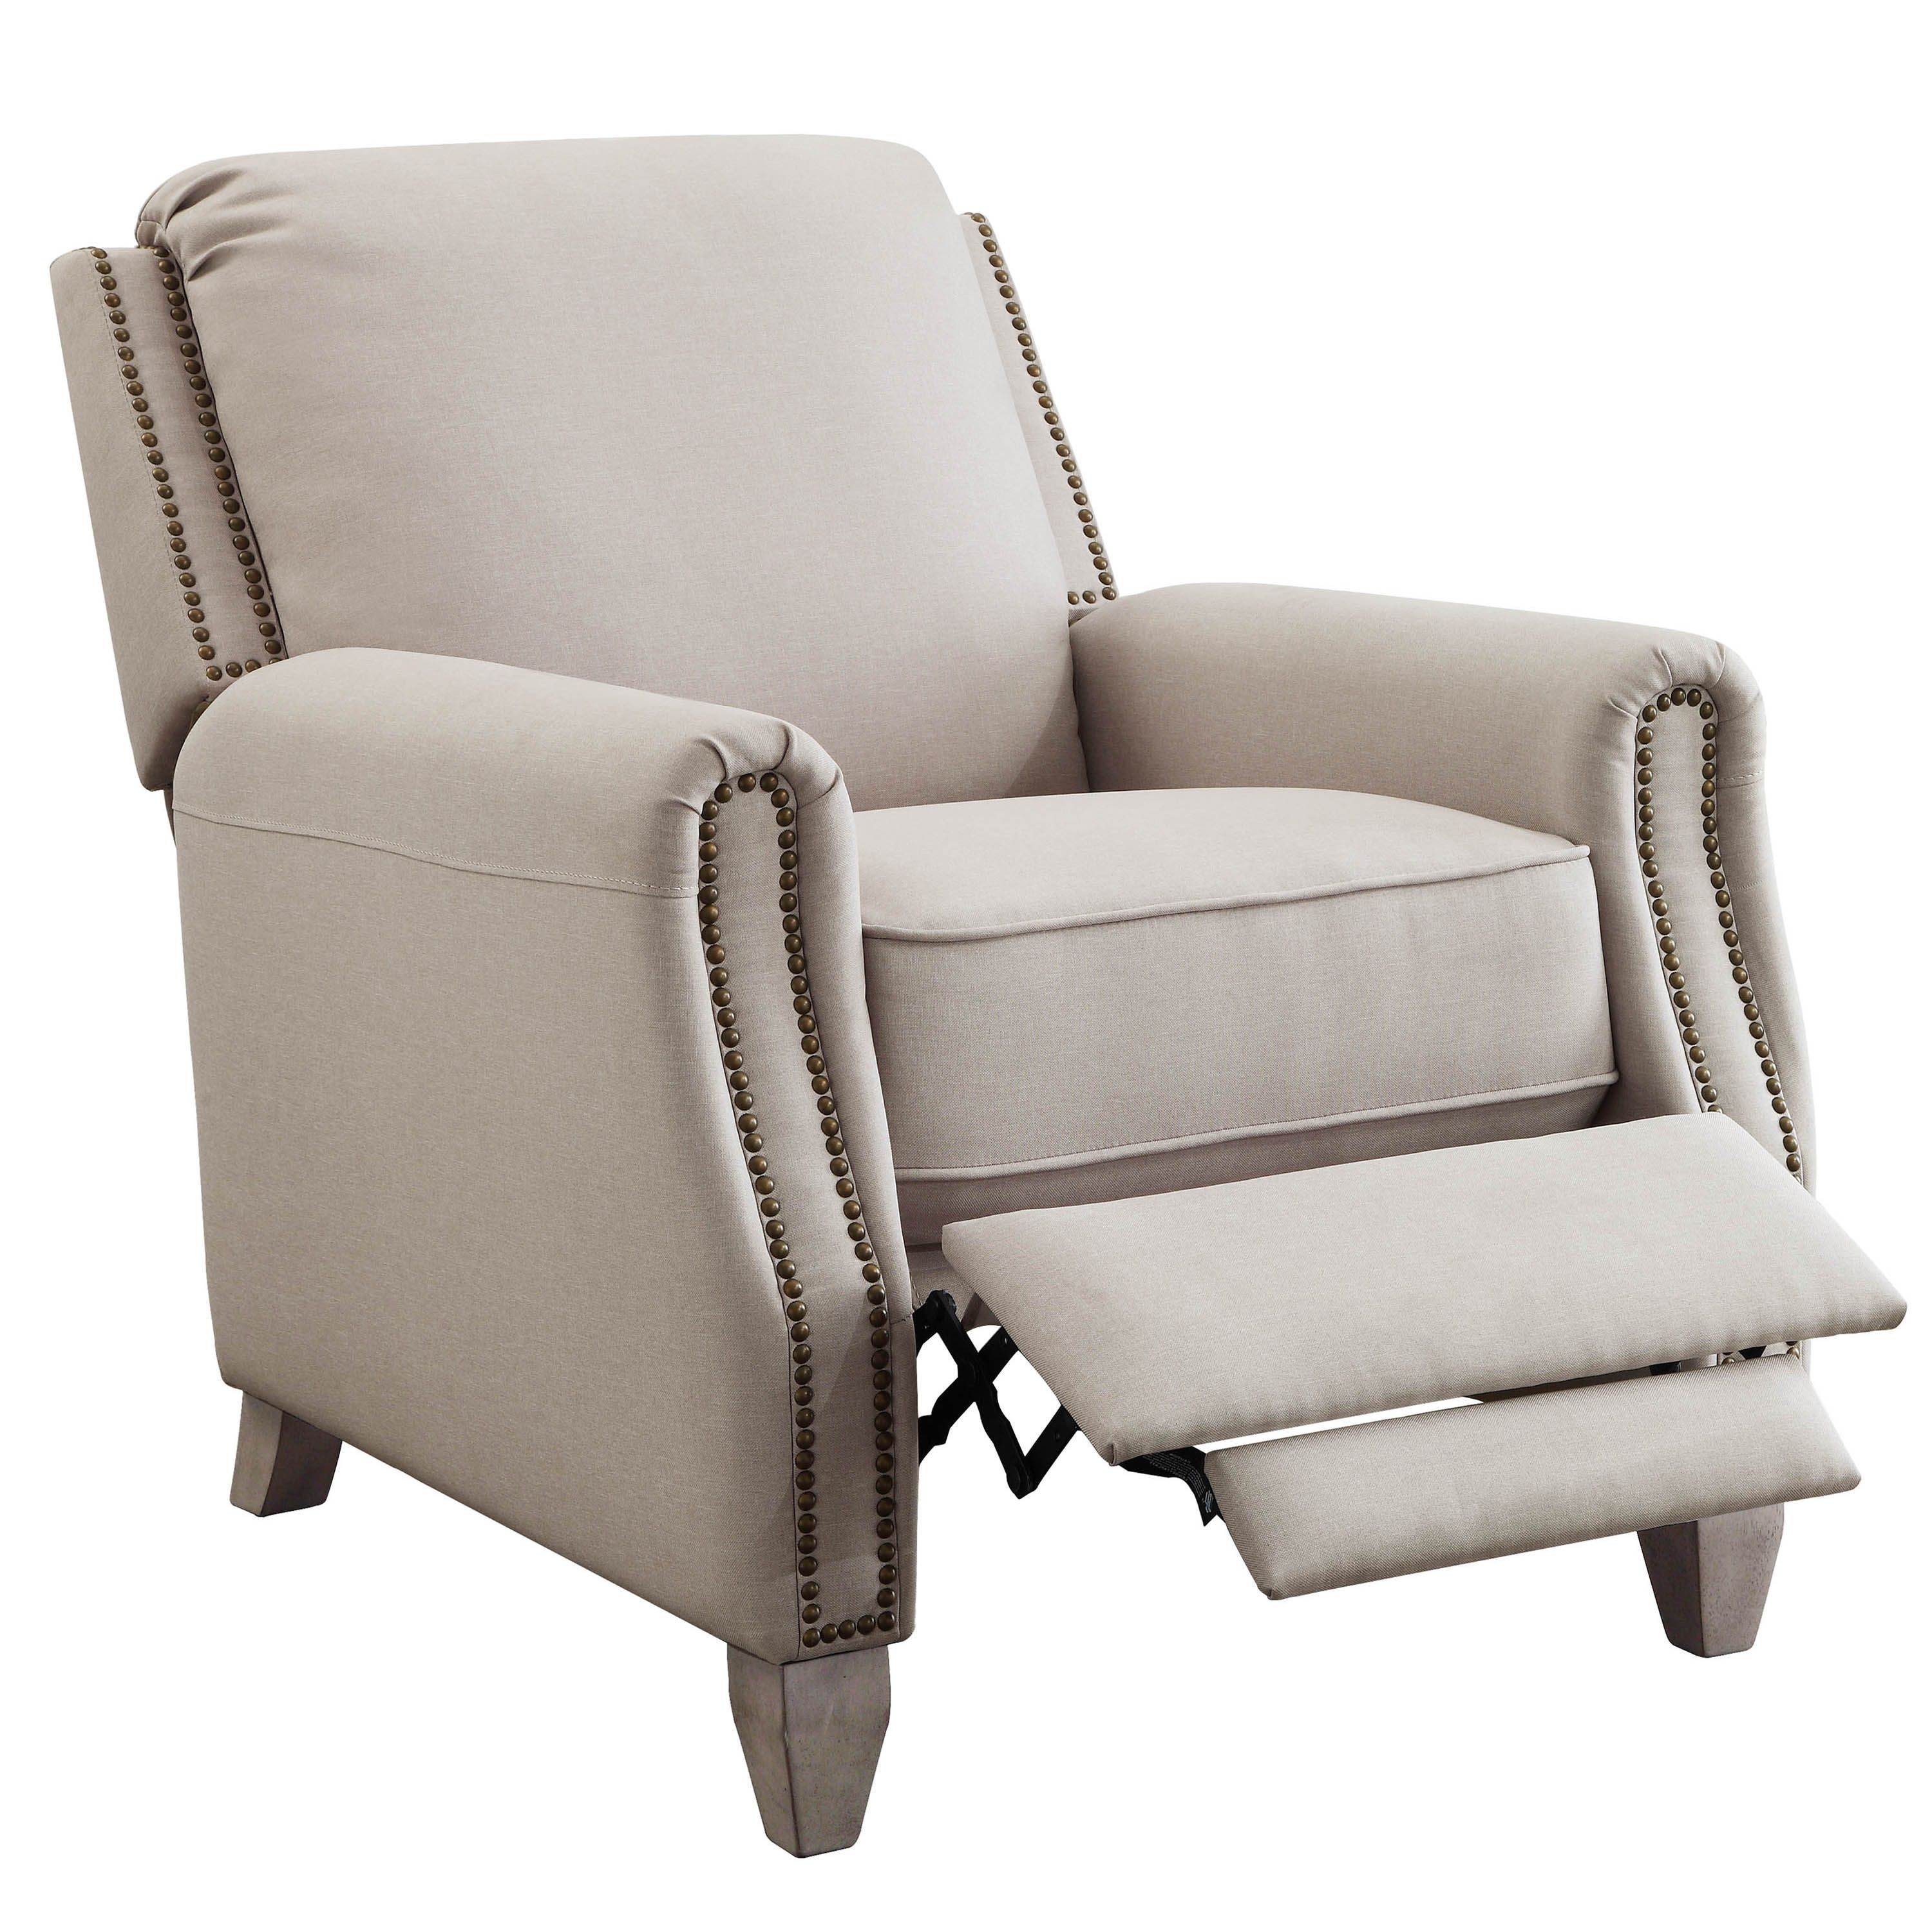 Better Homes & Gardens Pushback Recliner, Taupe Fabric